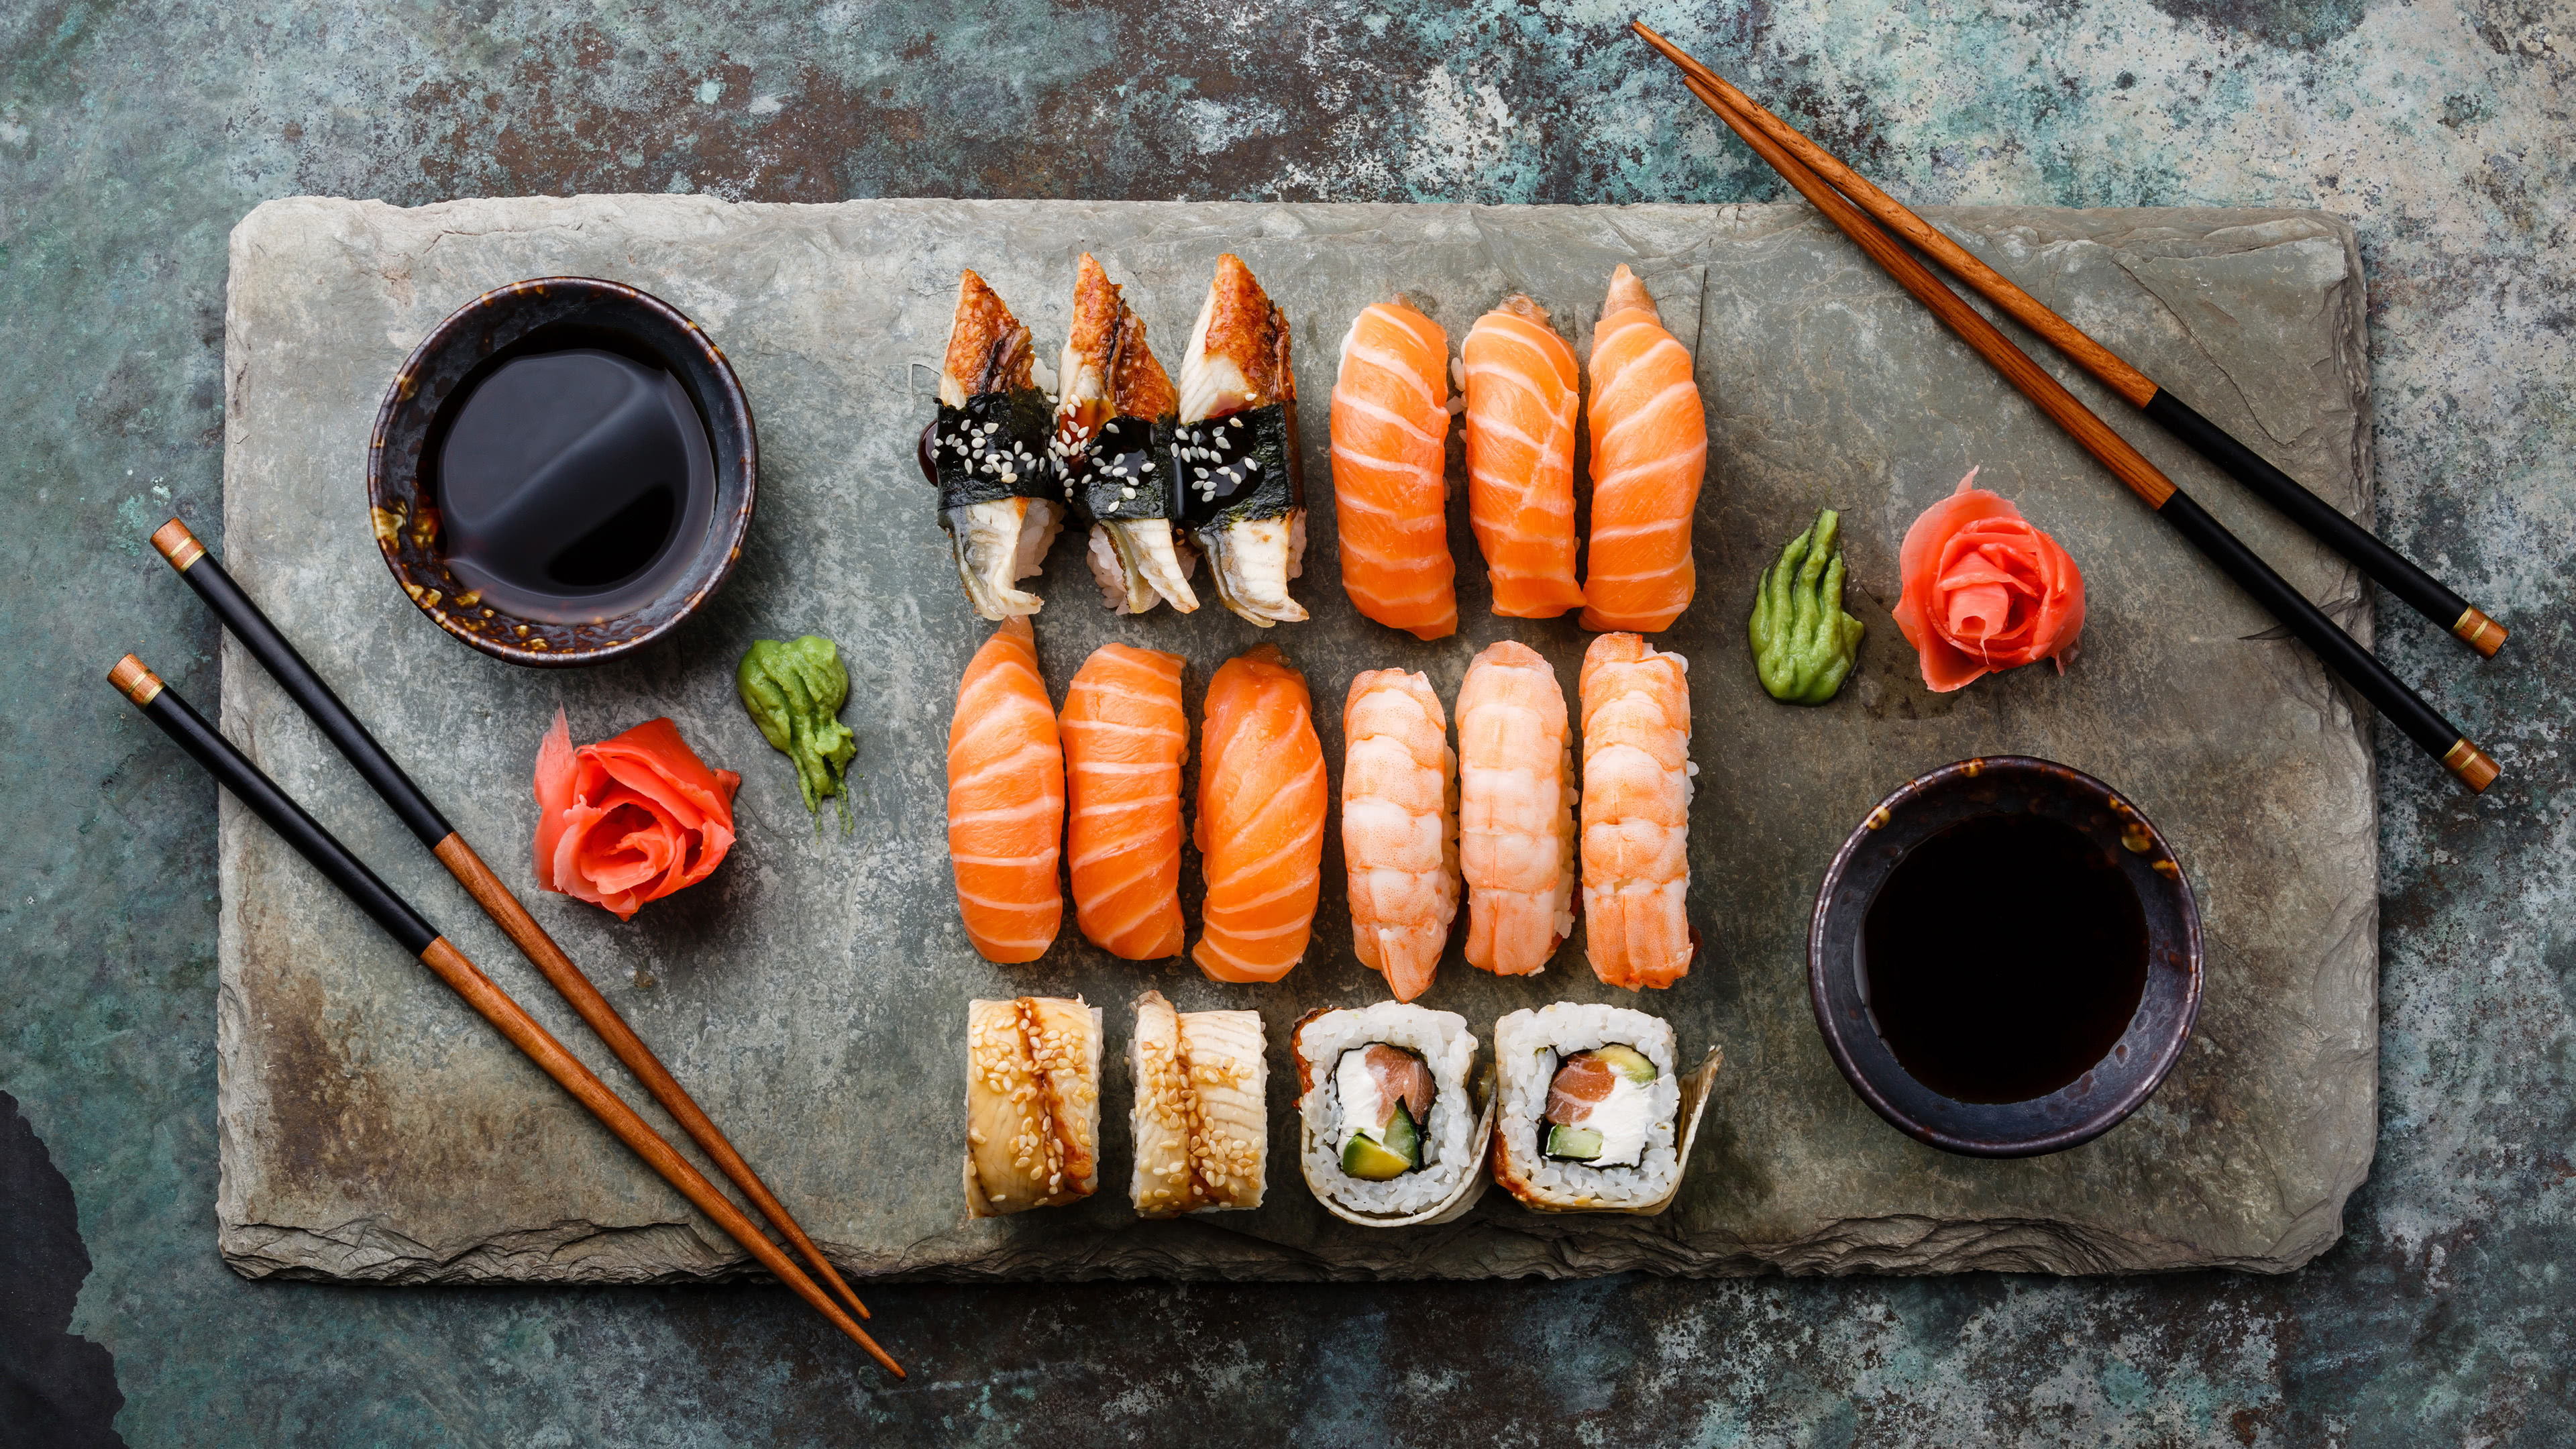 Let us have sushi as wallpaper instead 3840x2160 wallpaper 3840x2160